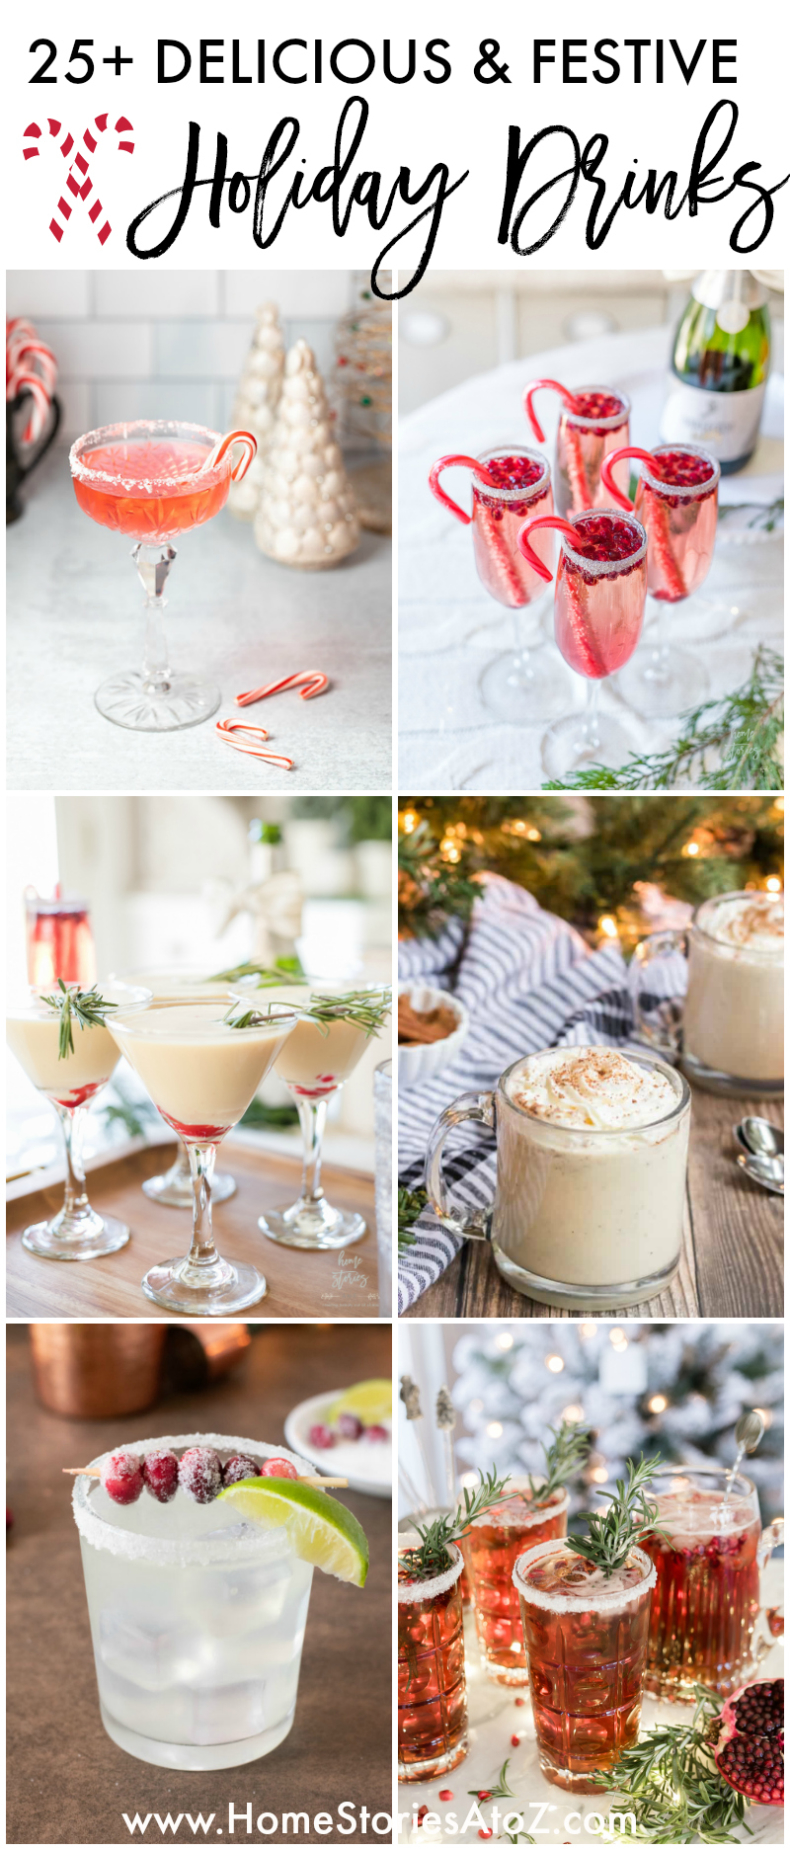 25+ Delicious and Festive Holiday Drink Recipes